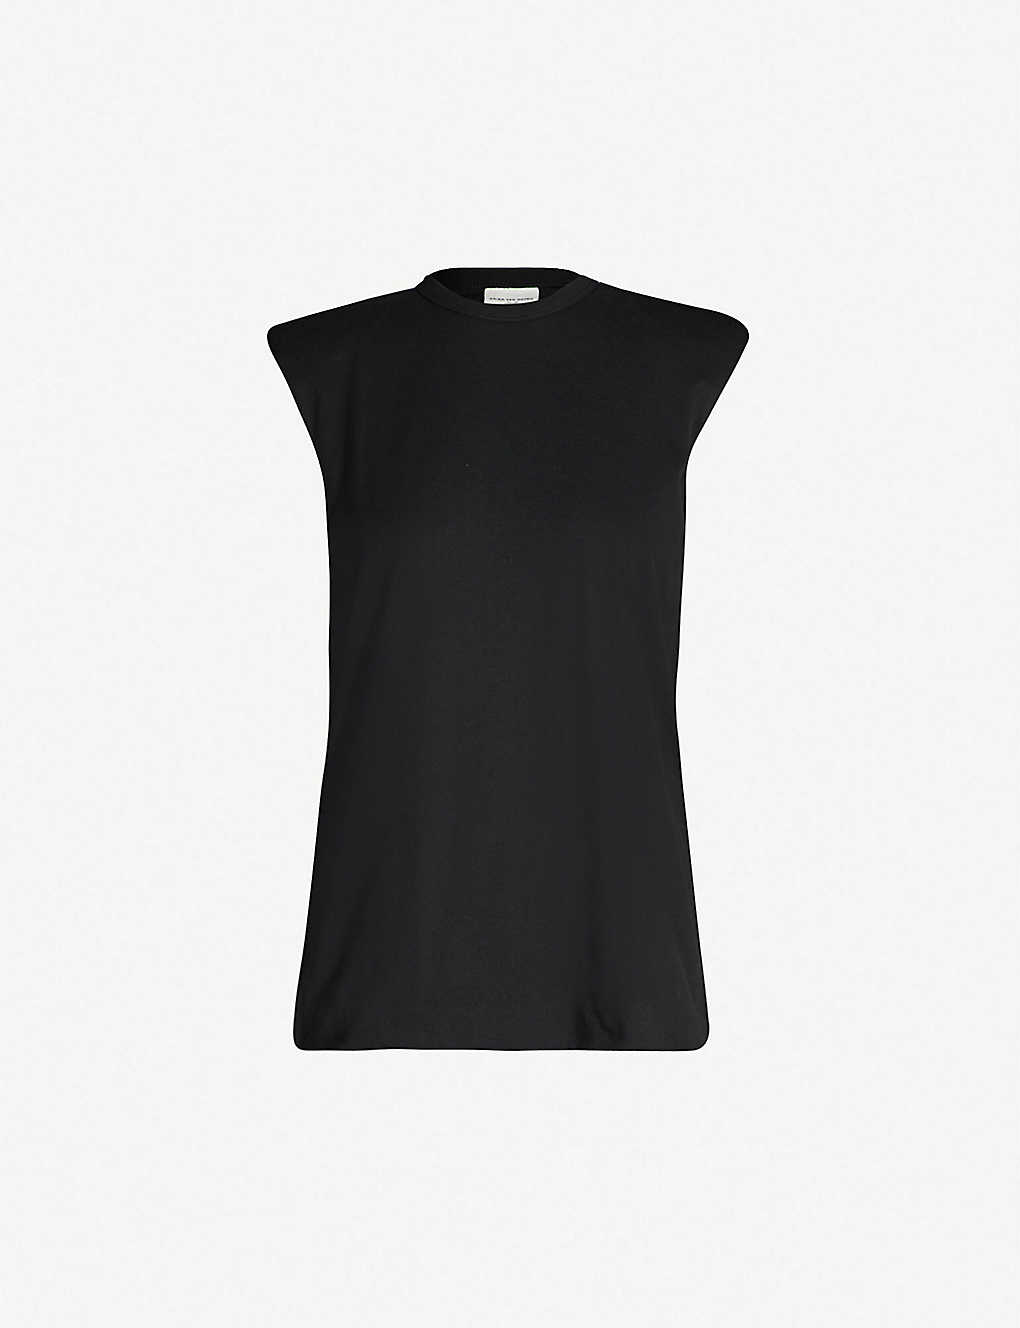 127c93379c DRIES VAN NOTEN - Shoulder pad cotton-jersey T-shirt